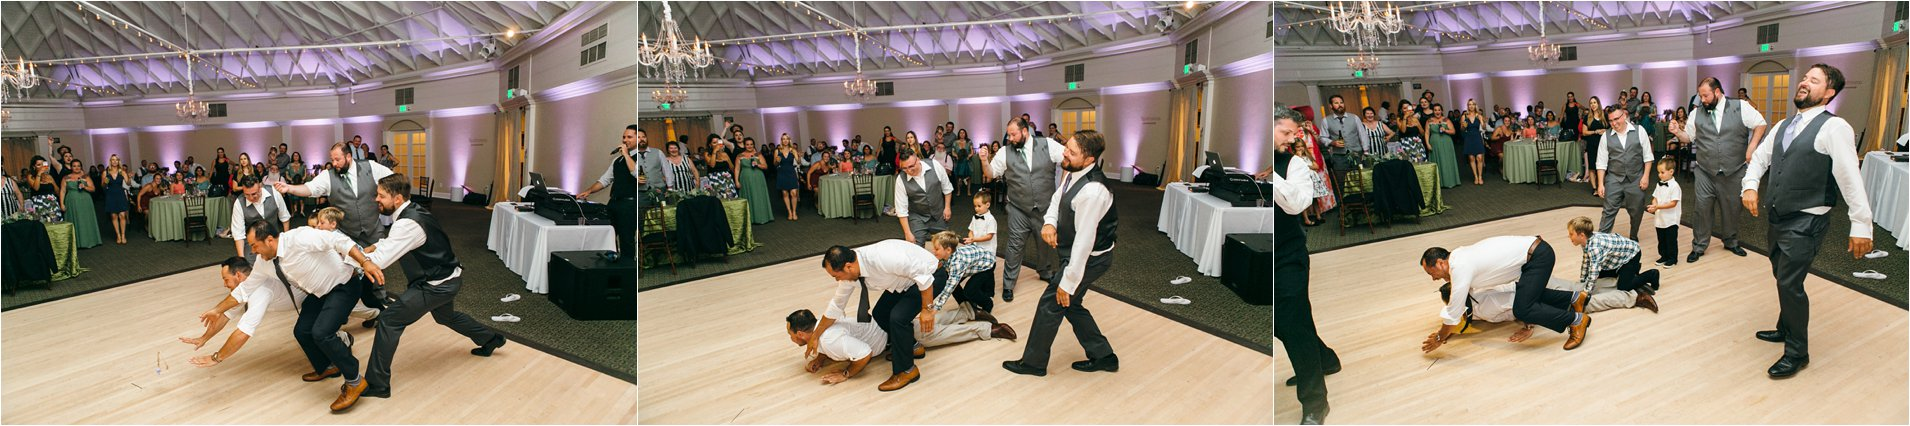 Wedding Reception Garter Toss